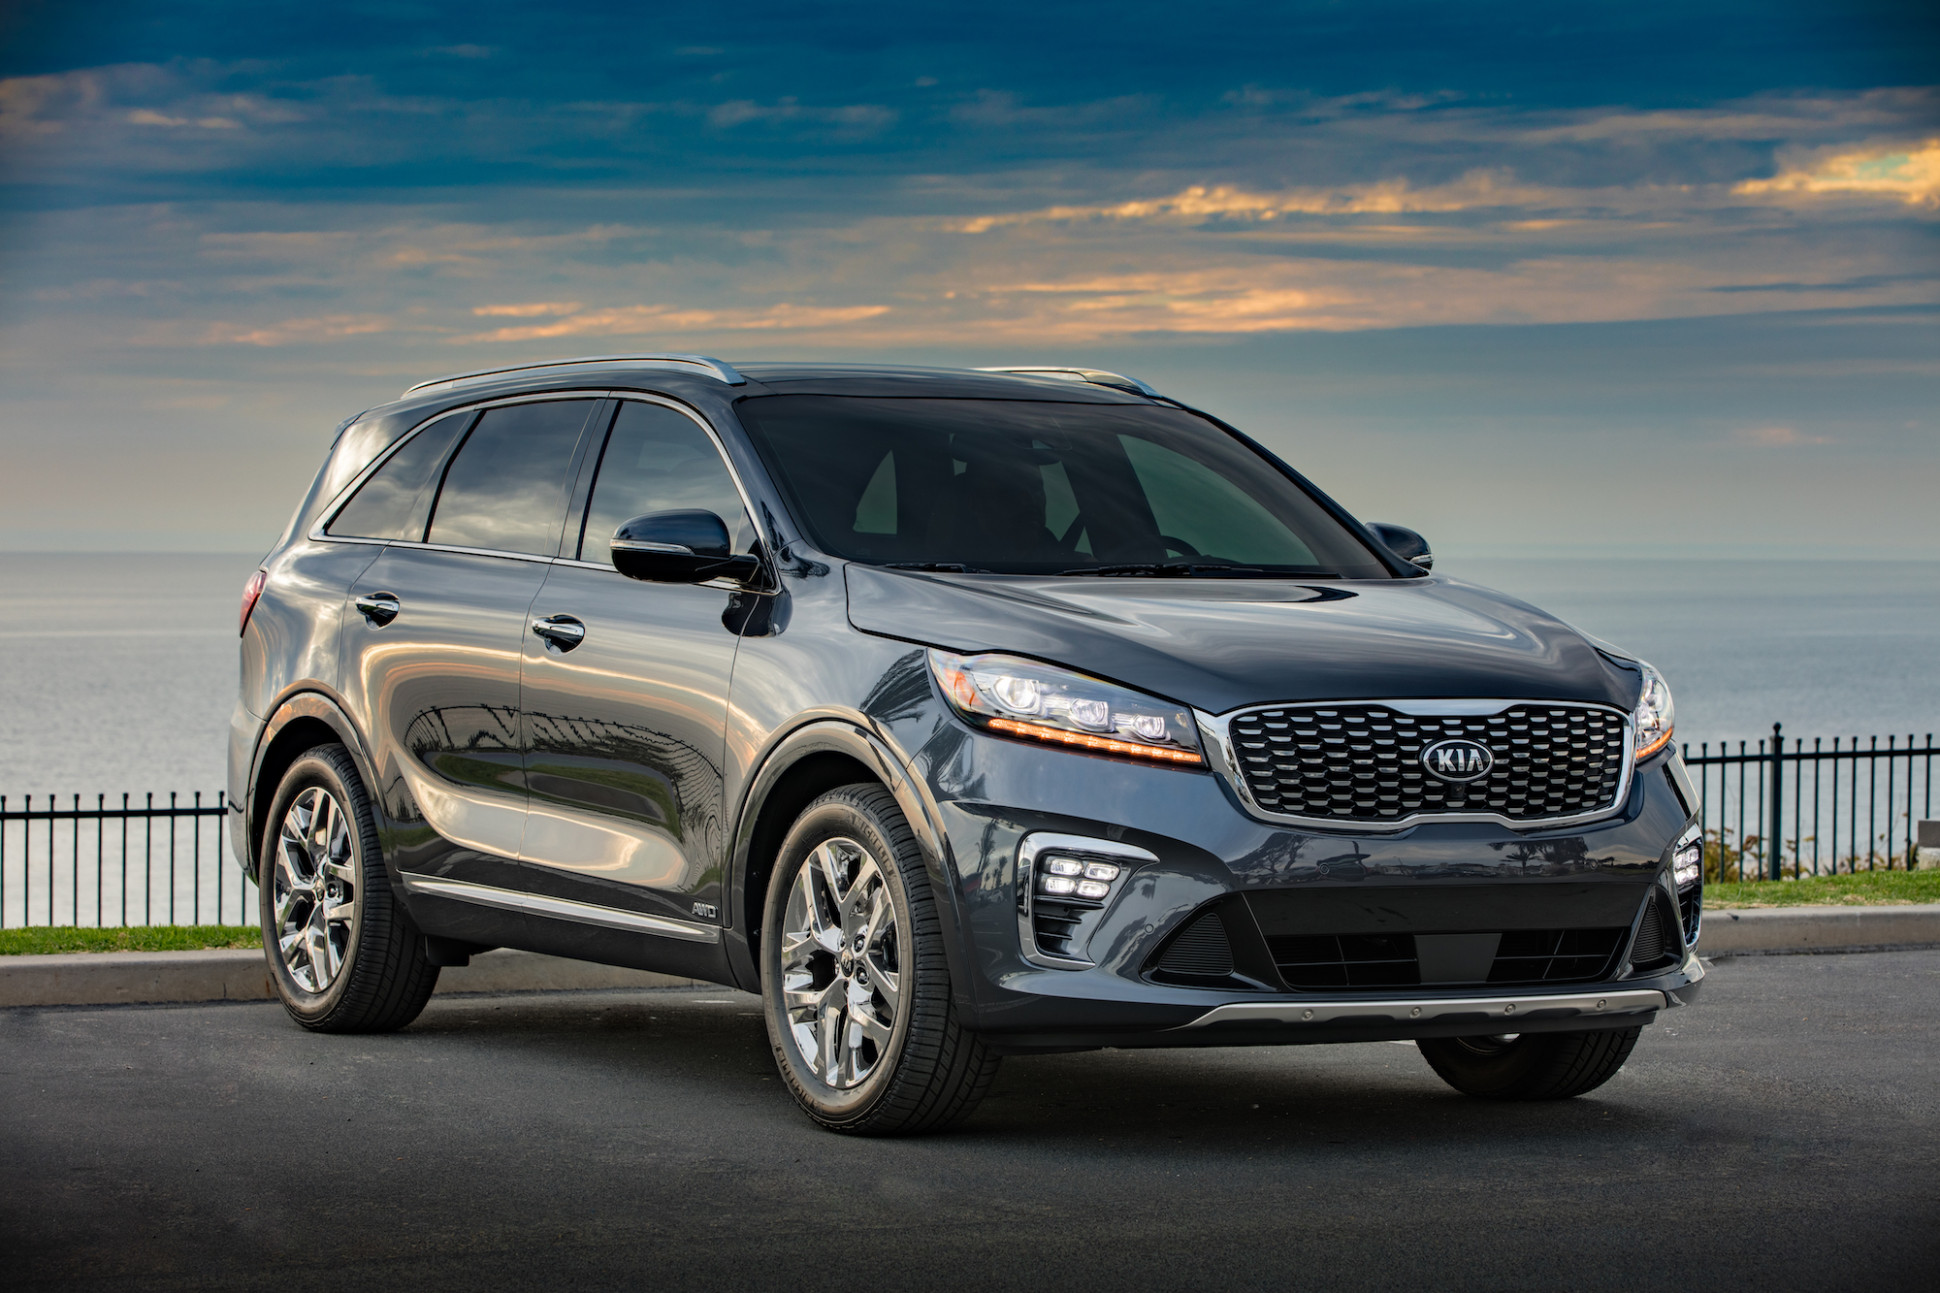 8 Kia Sorento Review, Ratings, Specs, Prices, and Photos - The ...